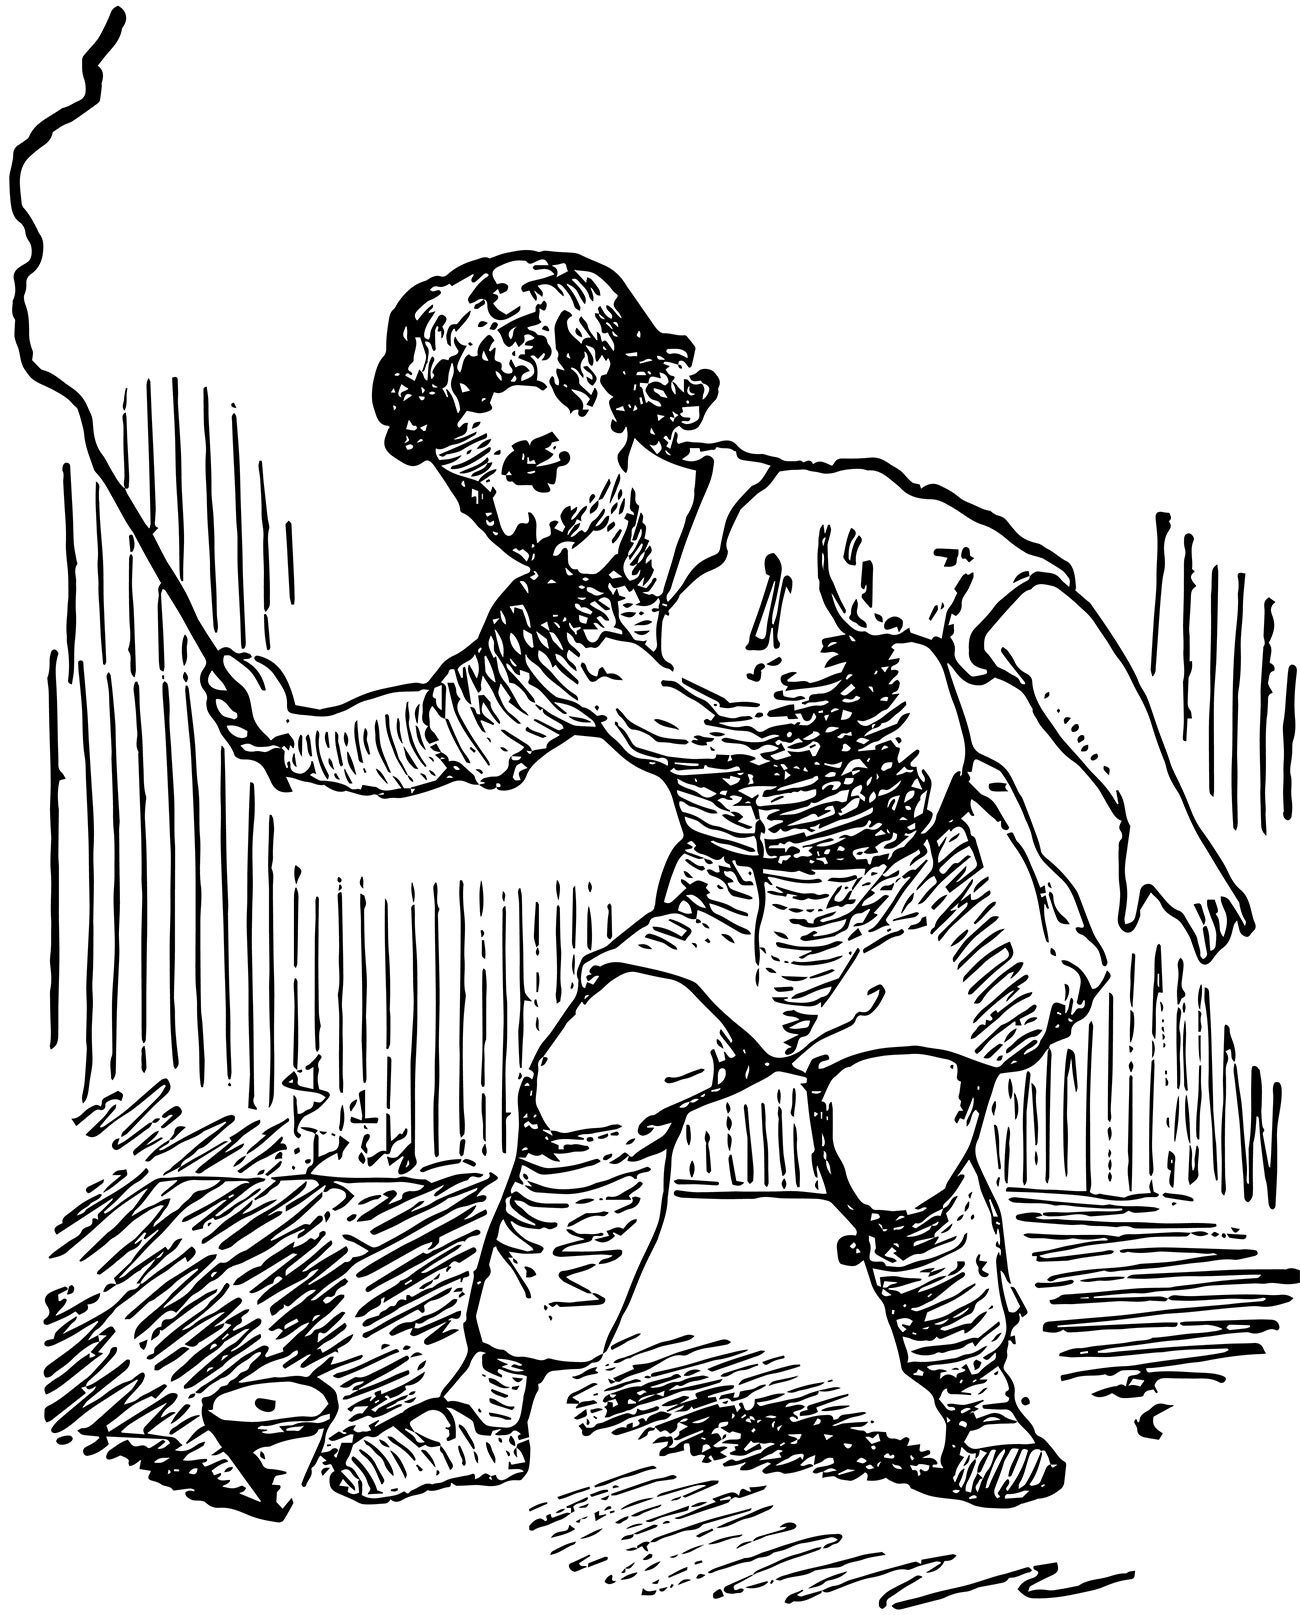 A boy playing a whipping top.